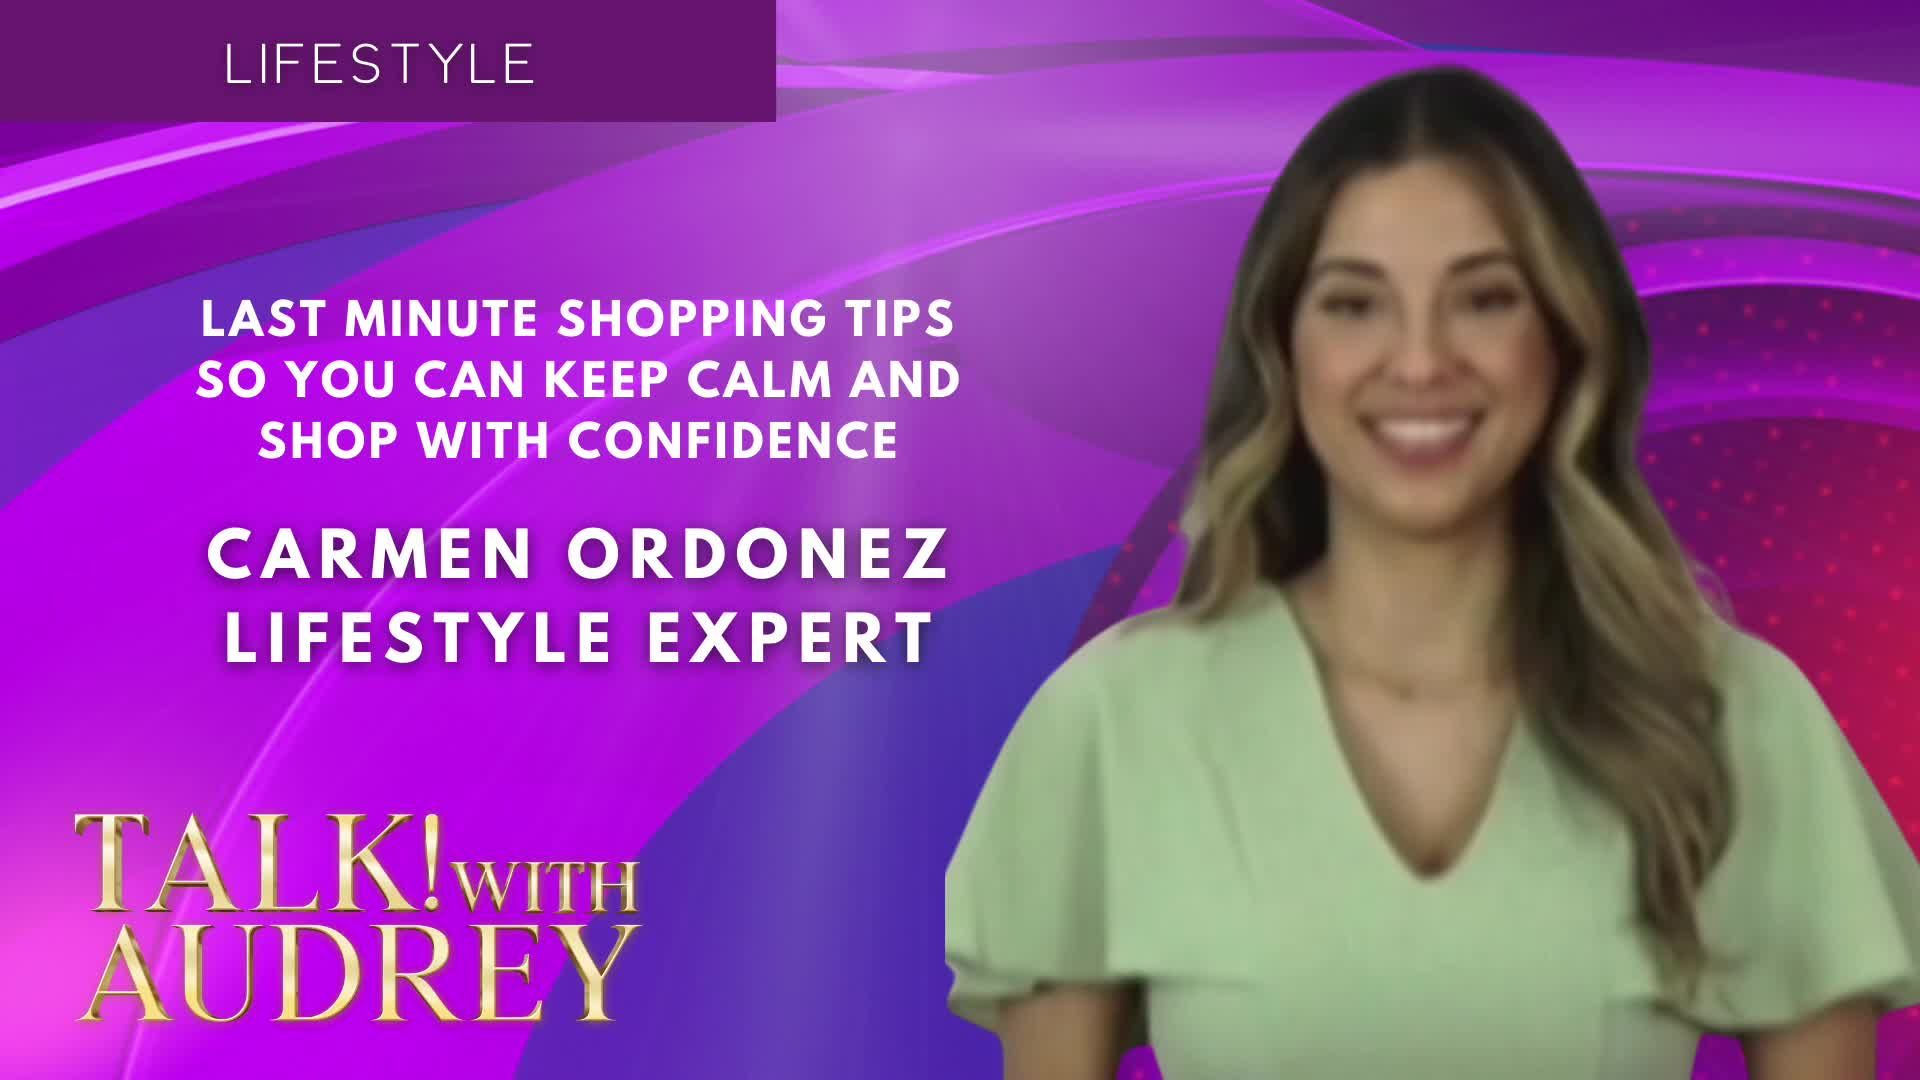 TALK! with AUDREY - Carmen Ordonez - Last Minute Shopping Tips So You Can Keep Calm and Shop with Confidence